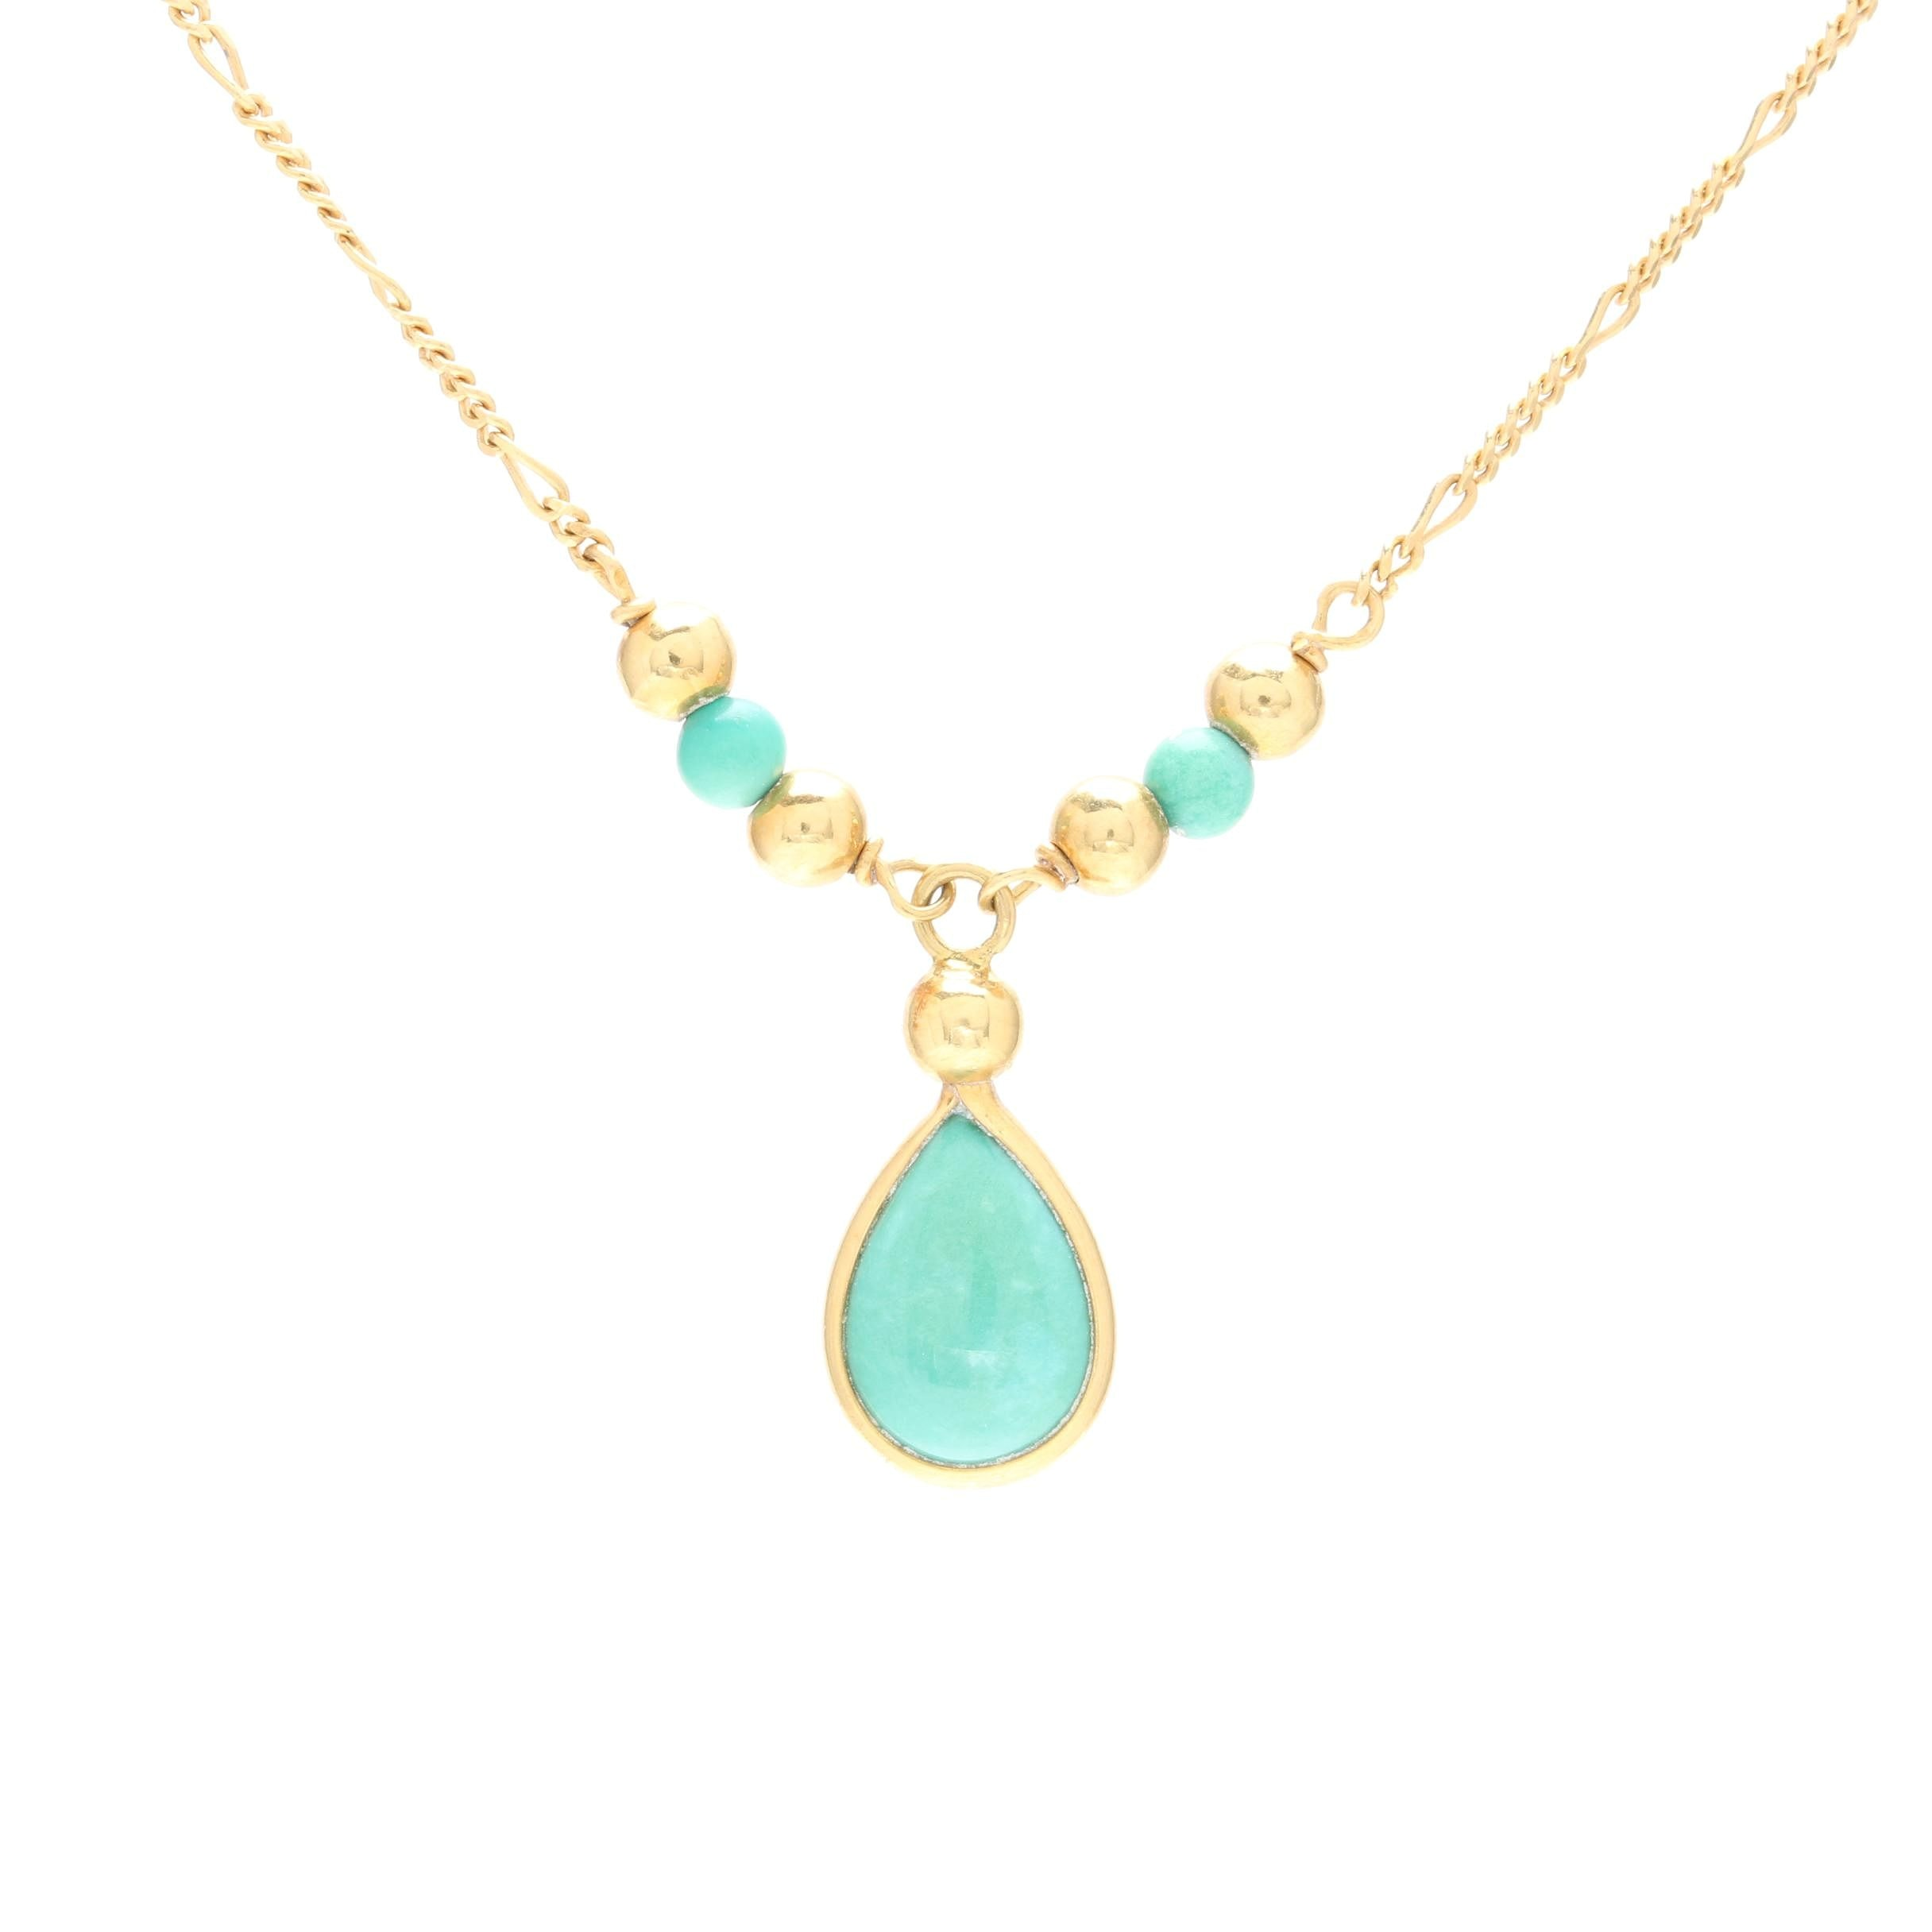 18K Yellow Gold Turquoise Necklace